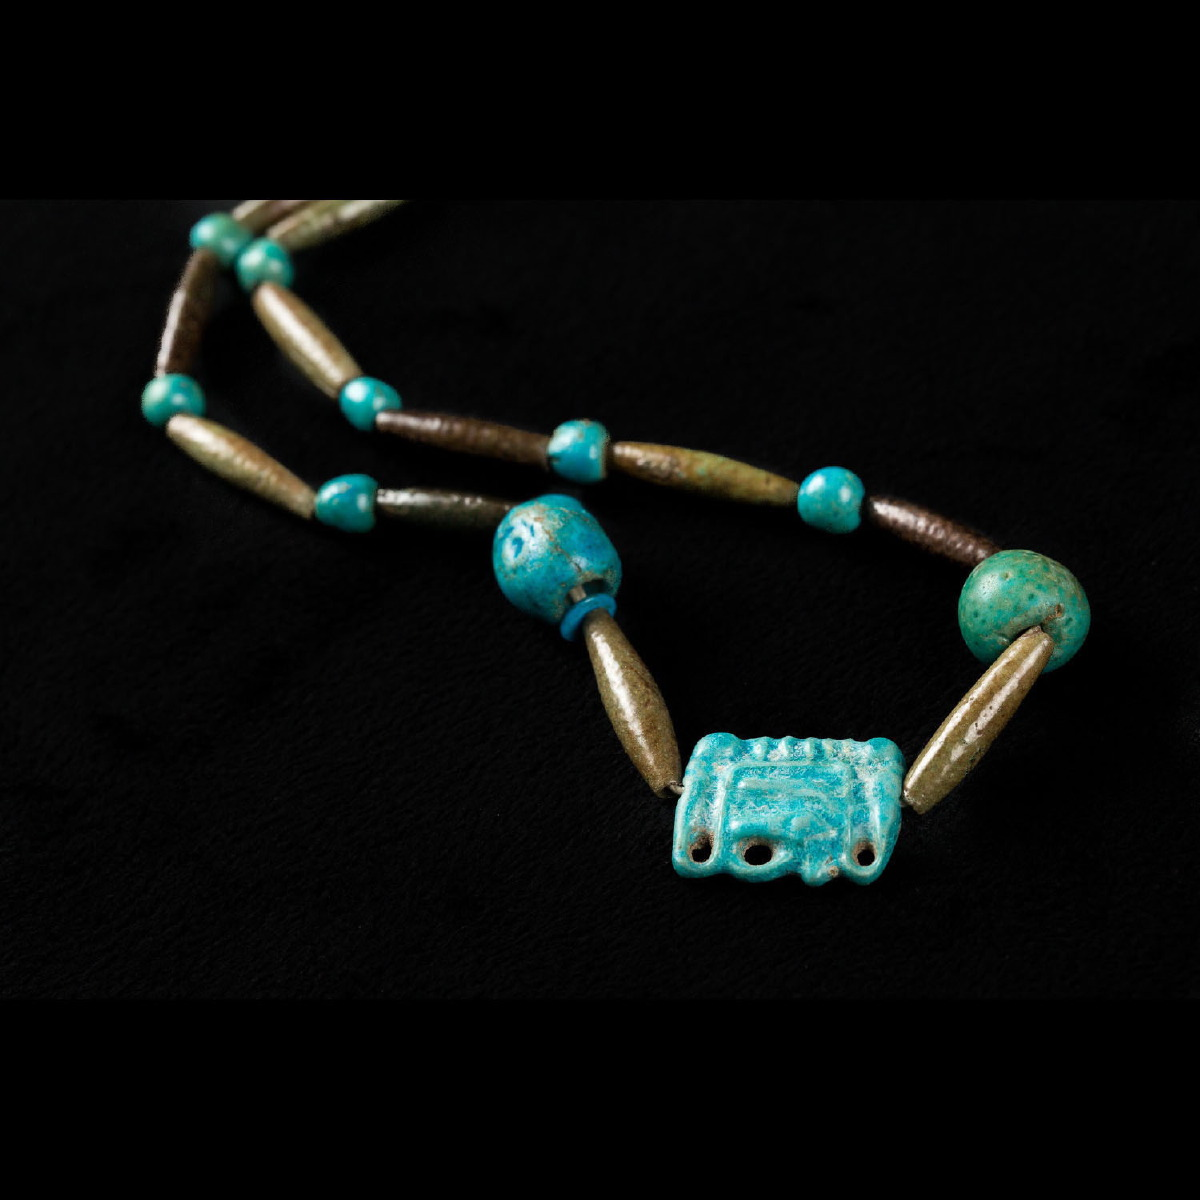 Photo of necklace-with-amulet-metropolitan-museum-san-diego-musuem-of-man-galerie-golconda